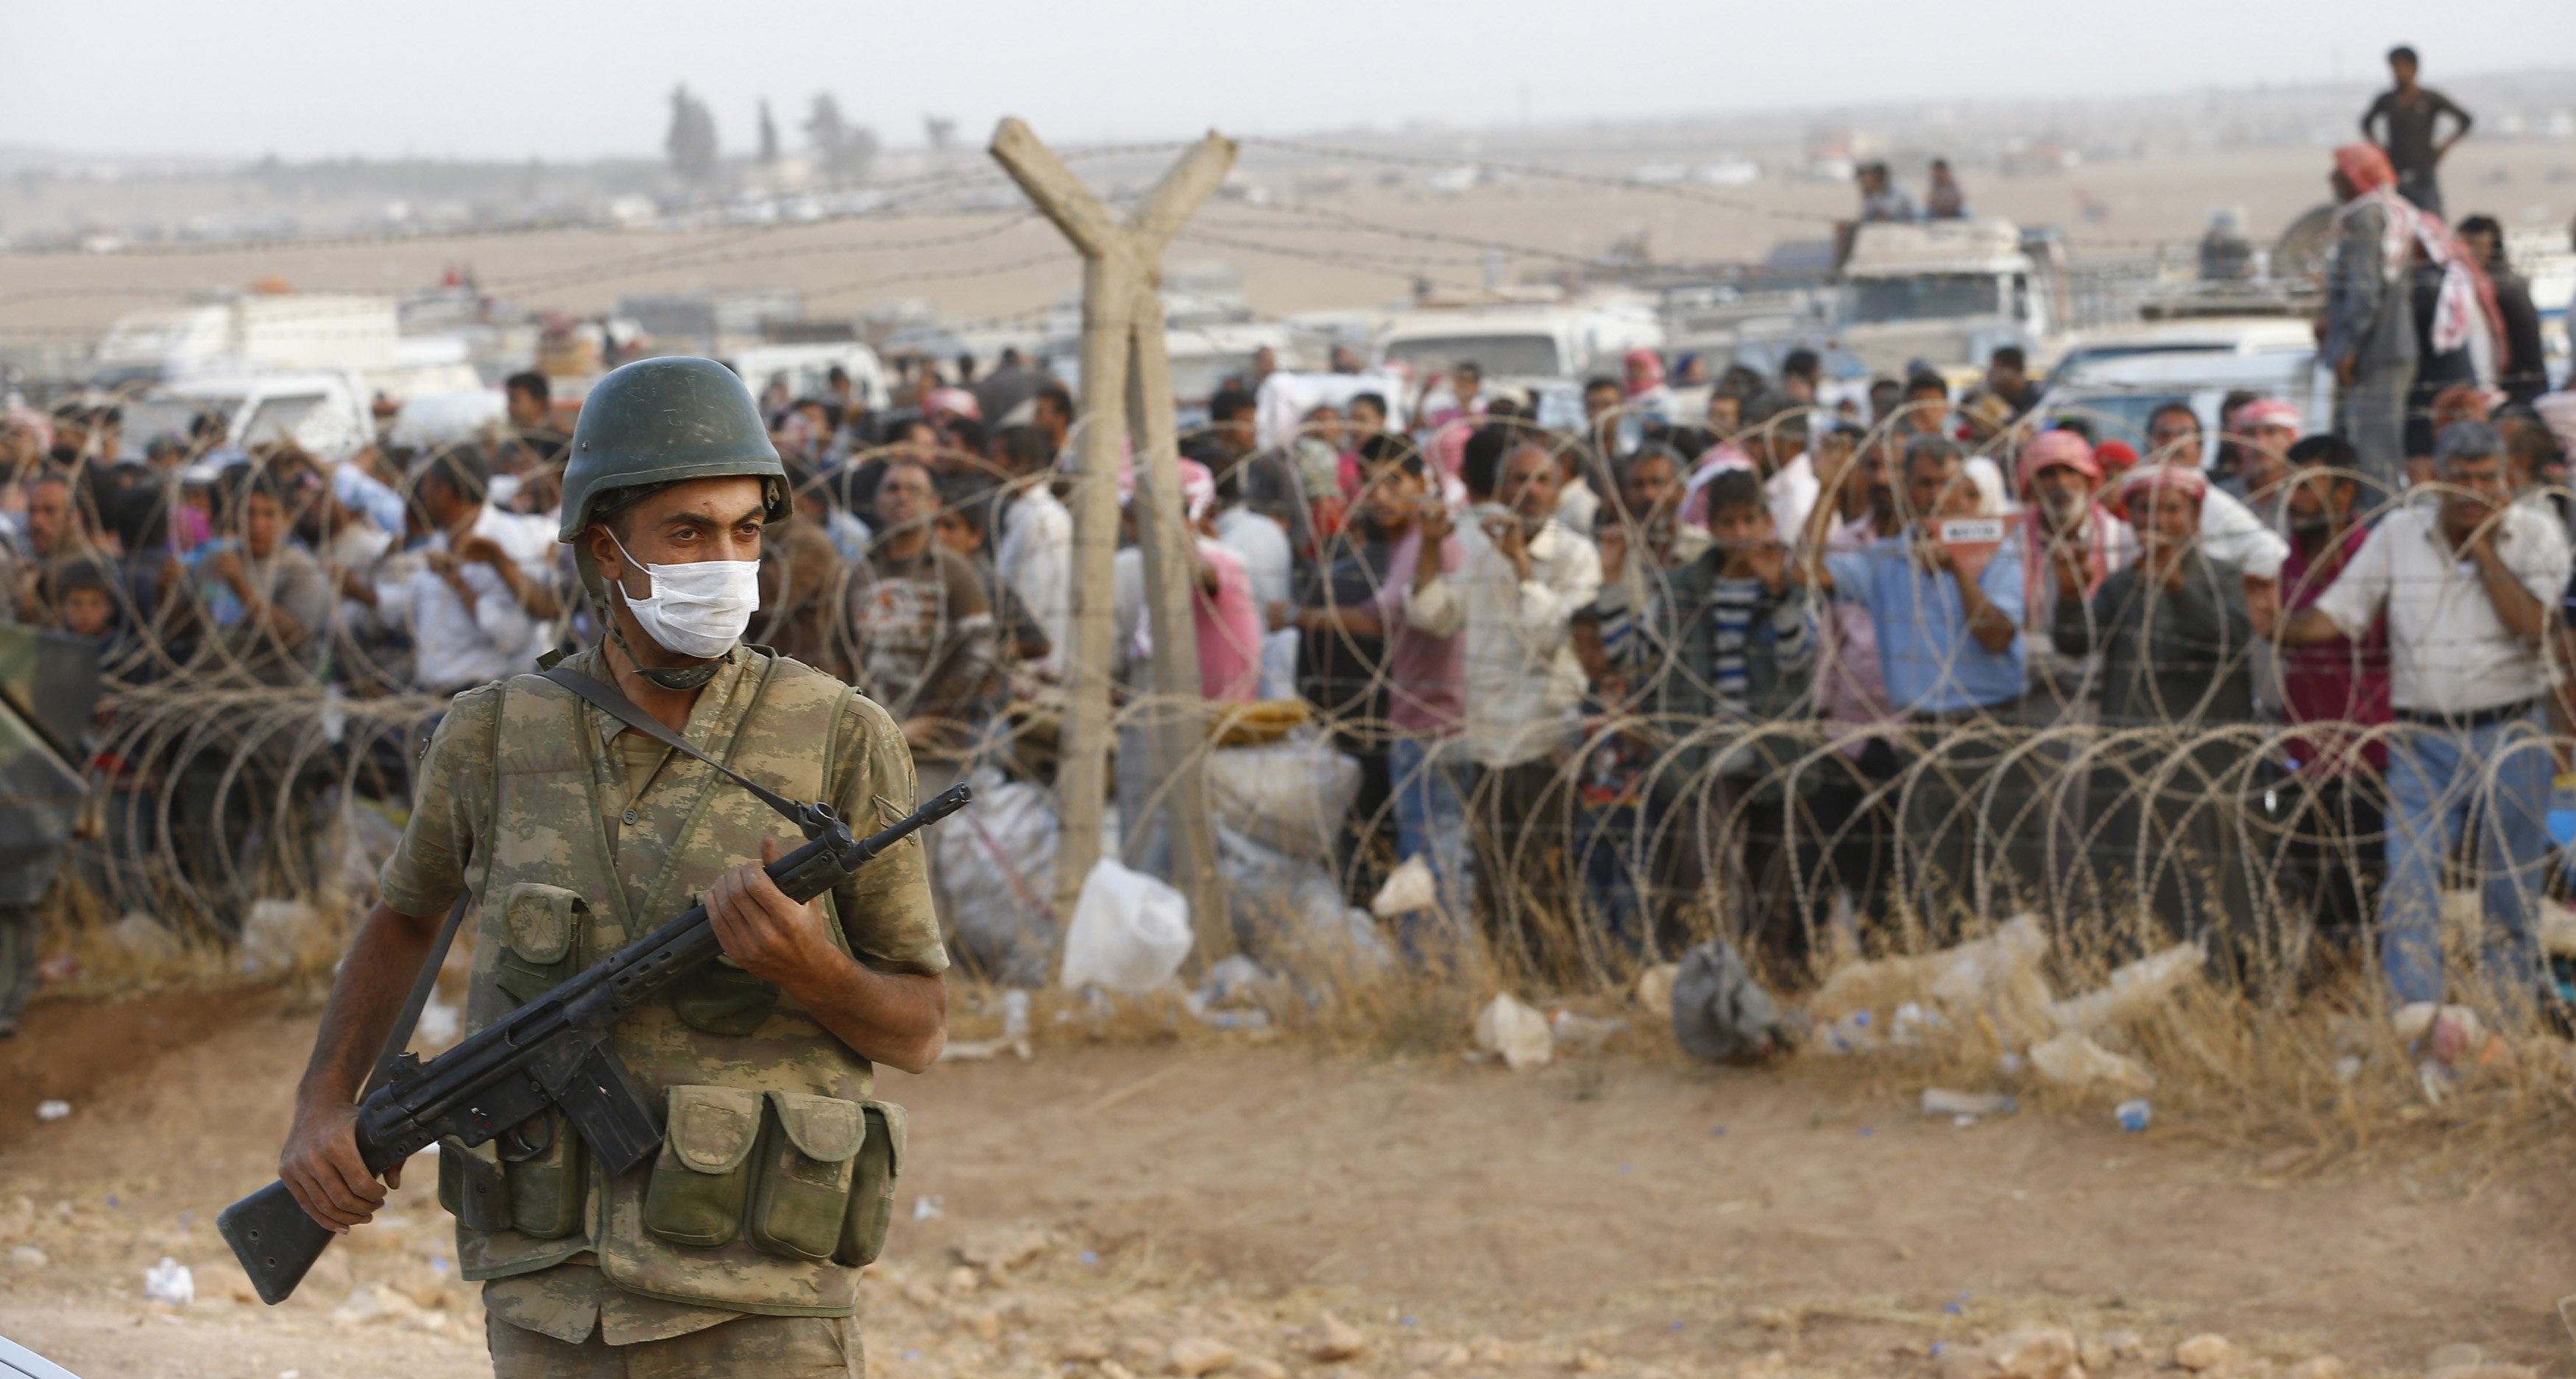 Erdogan Calls for Ground Operation as Kobane is 'About to Fall'